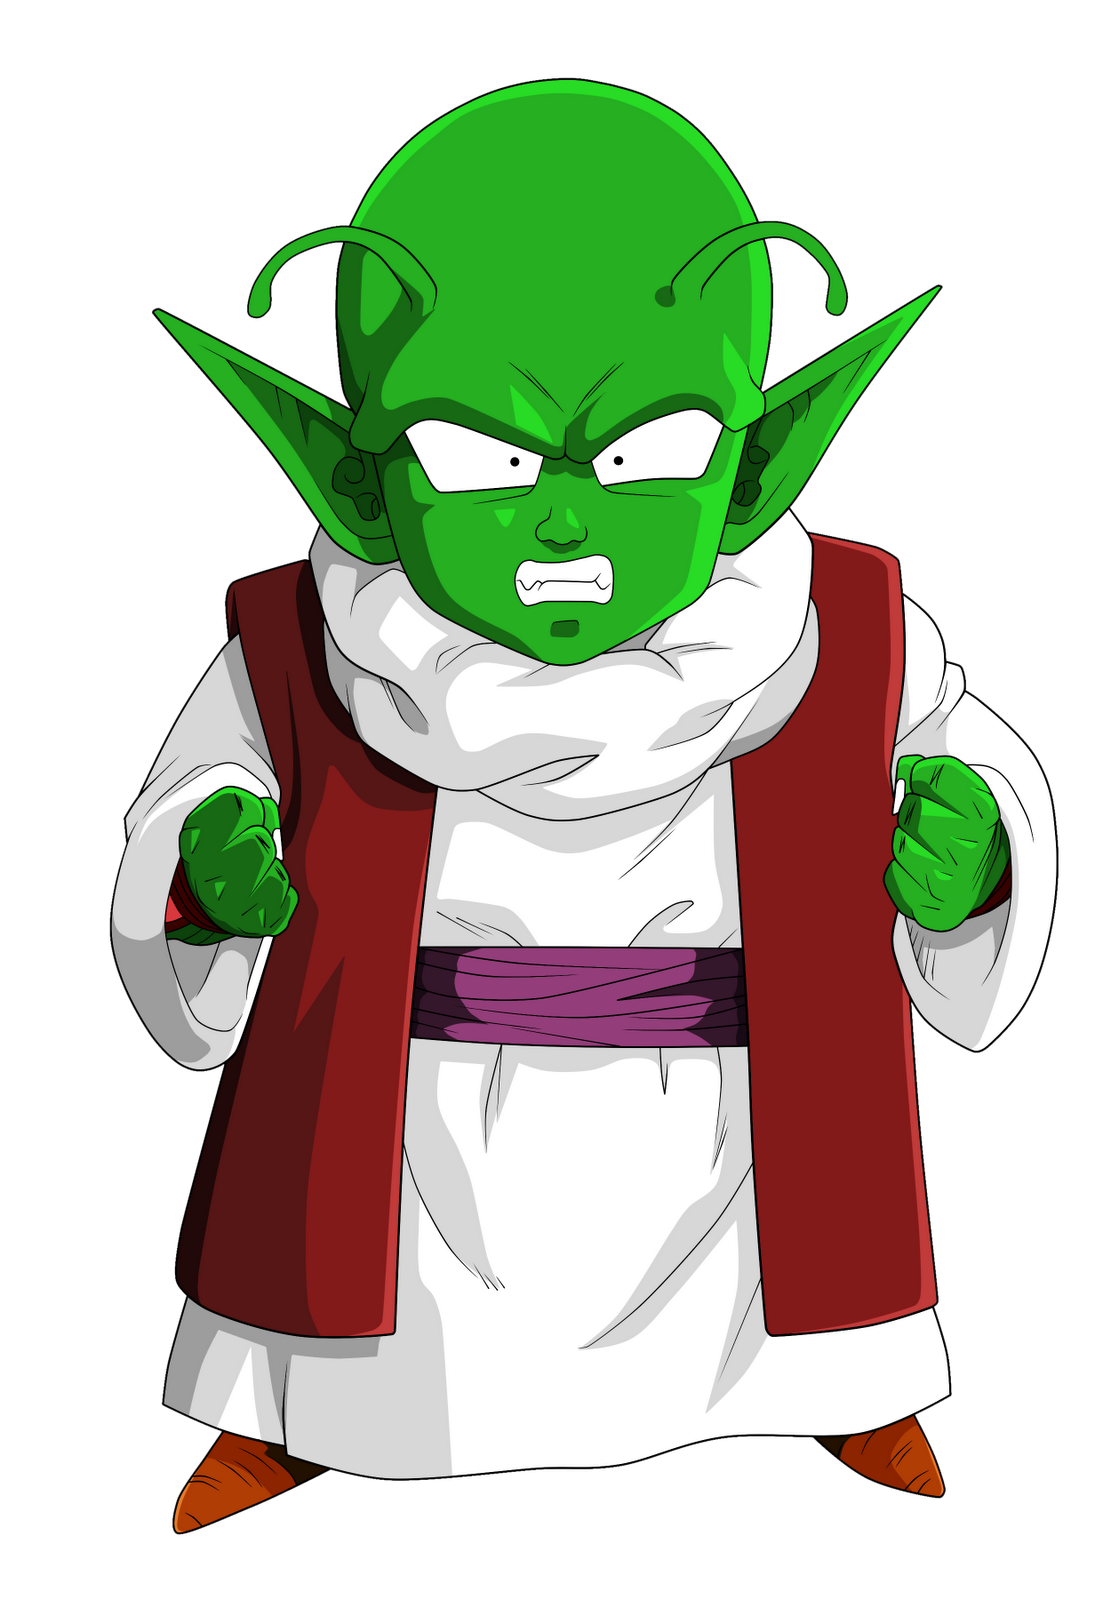 DRAGON BALL Z WALLPAPERS: Baby Dende